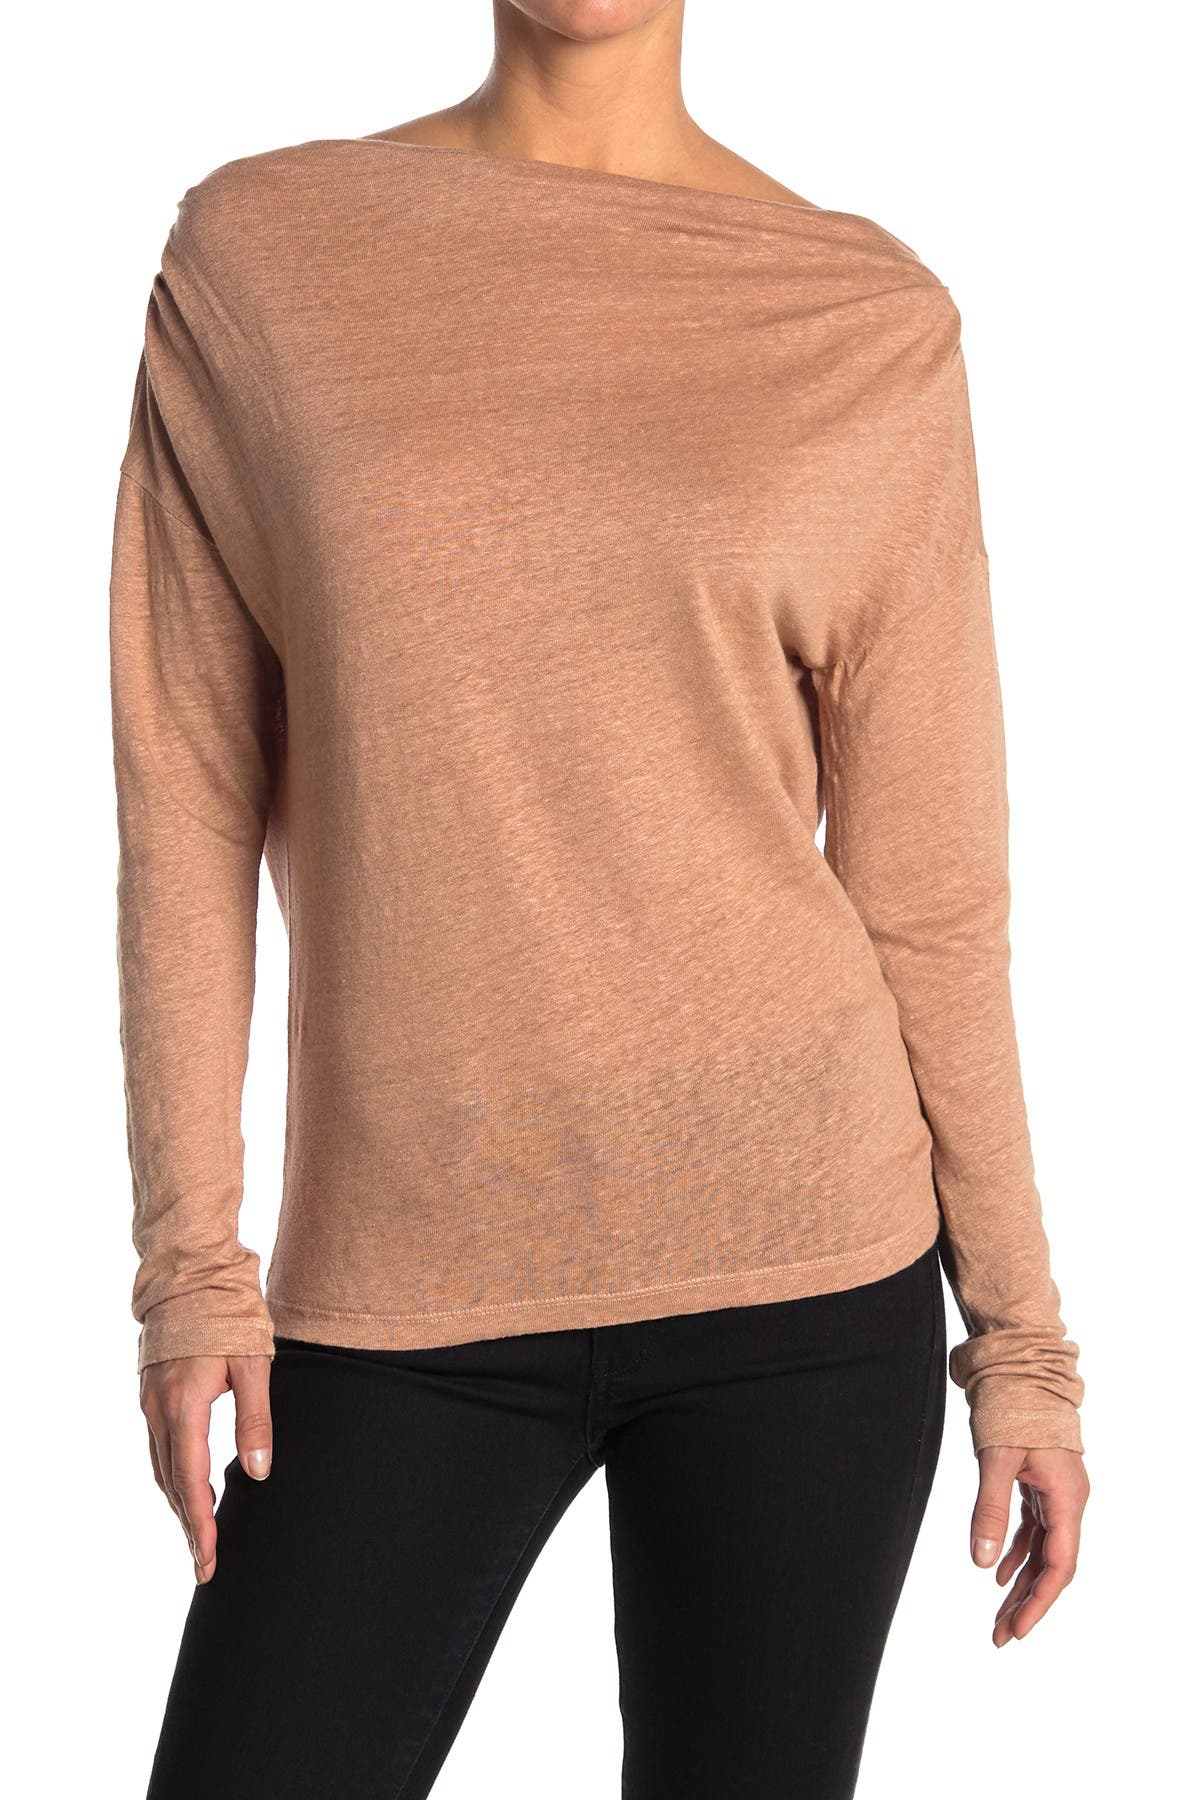 Image of Stateside Linen Jersey Cowl Neck Top